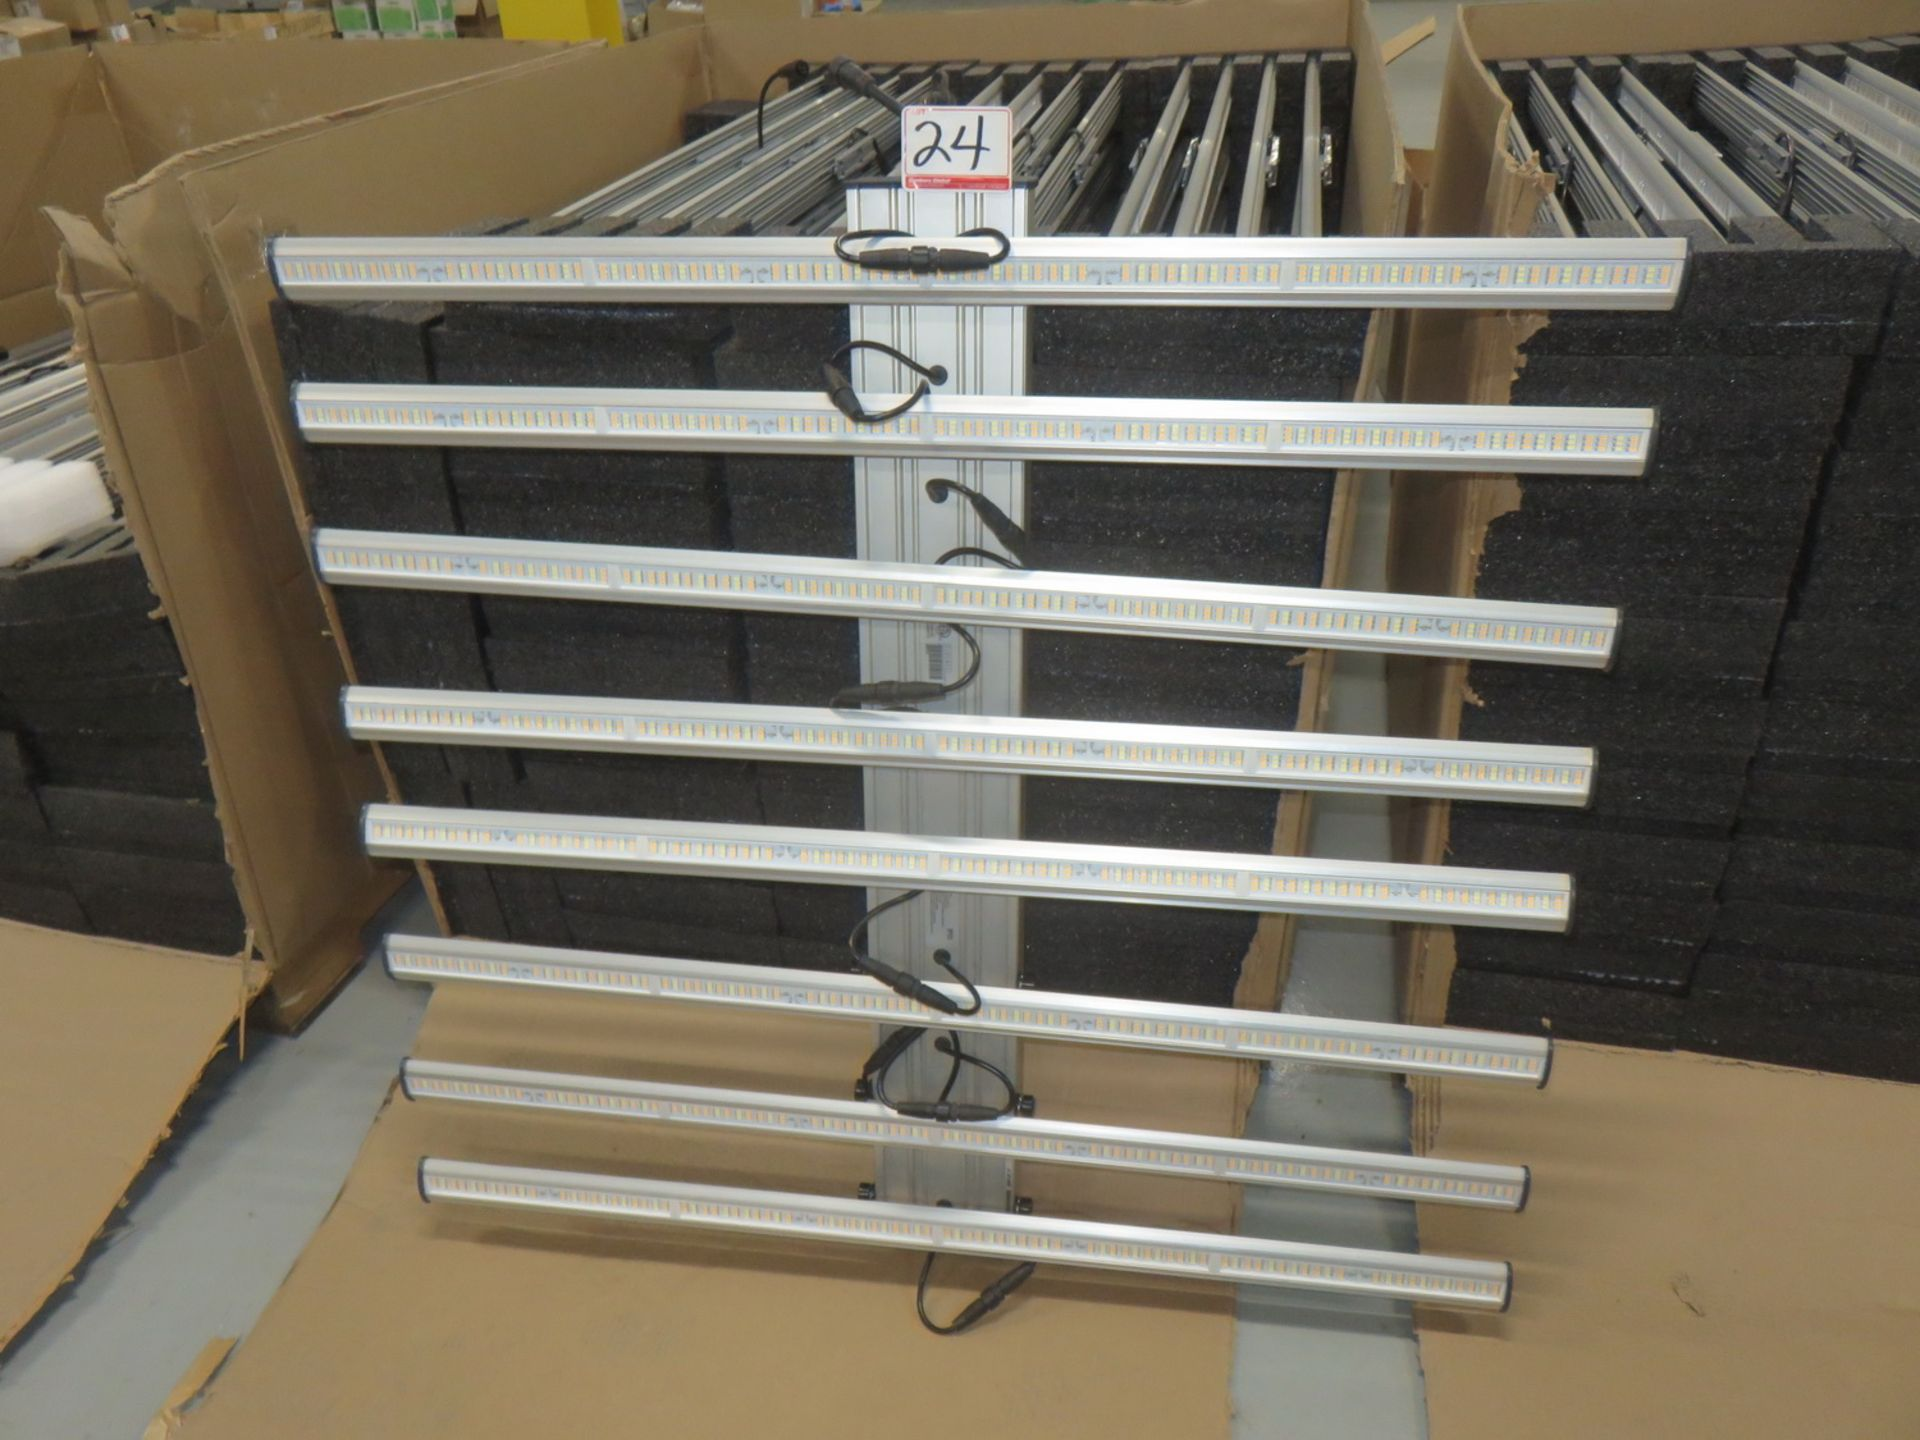 Lot 24 - LOT - NEW 2018 FLUENCE (BY OSRAM) SPYDR X FULL-CYCLE TOP-LIGHTING FOR COMMERCIAL HORTICULTURE